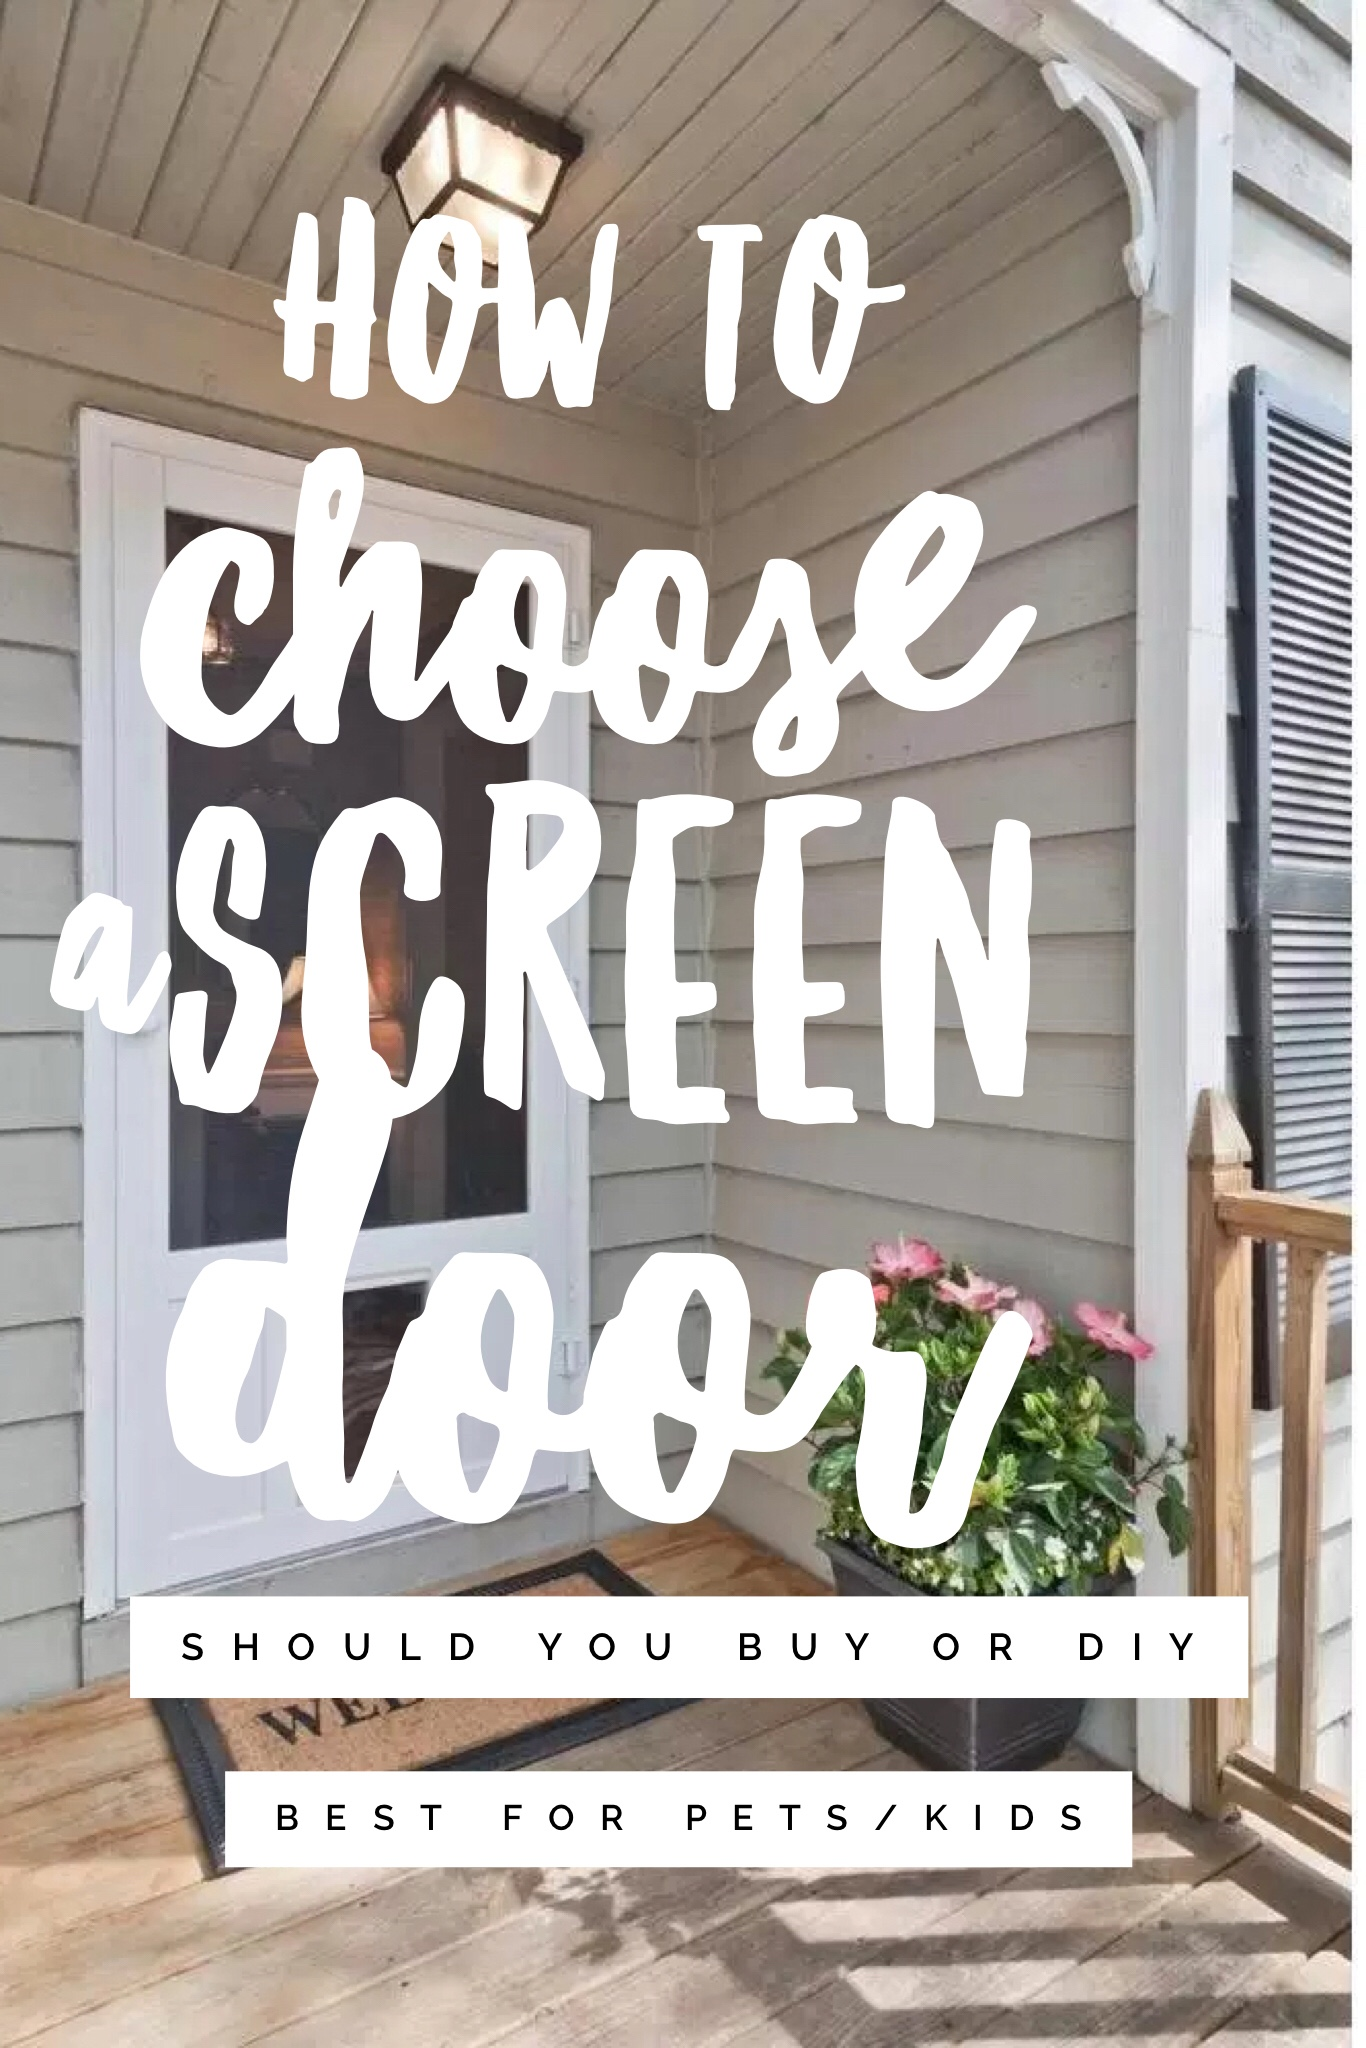 Screen Doors- How to Choose the Right Exterior Door for your Home - Home Improvements via Misty Nelson, blogger and influencer